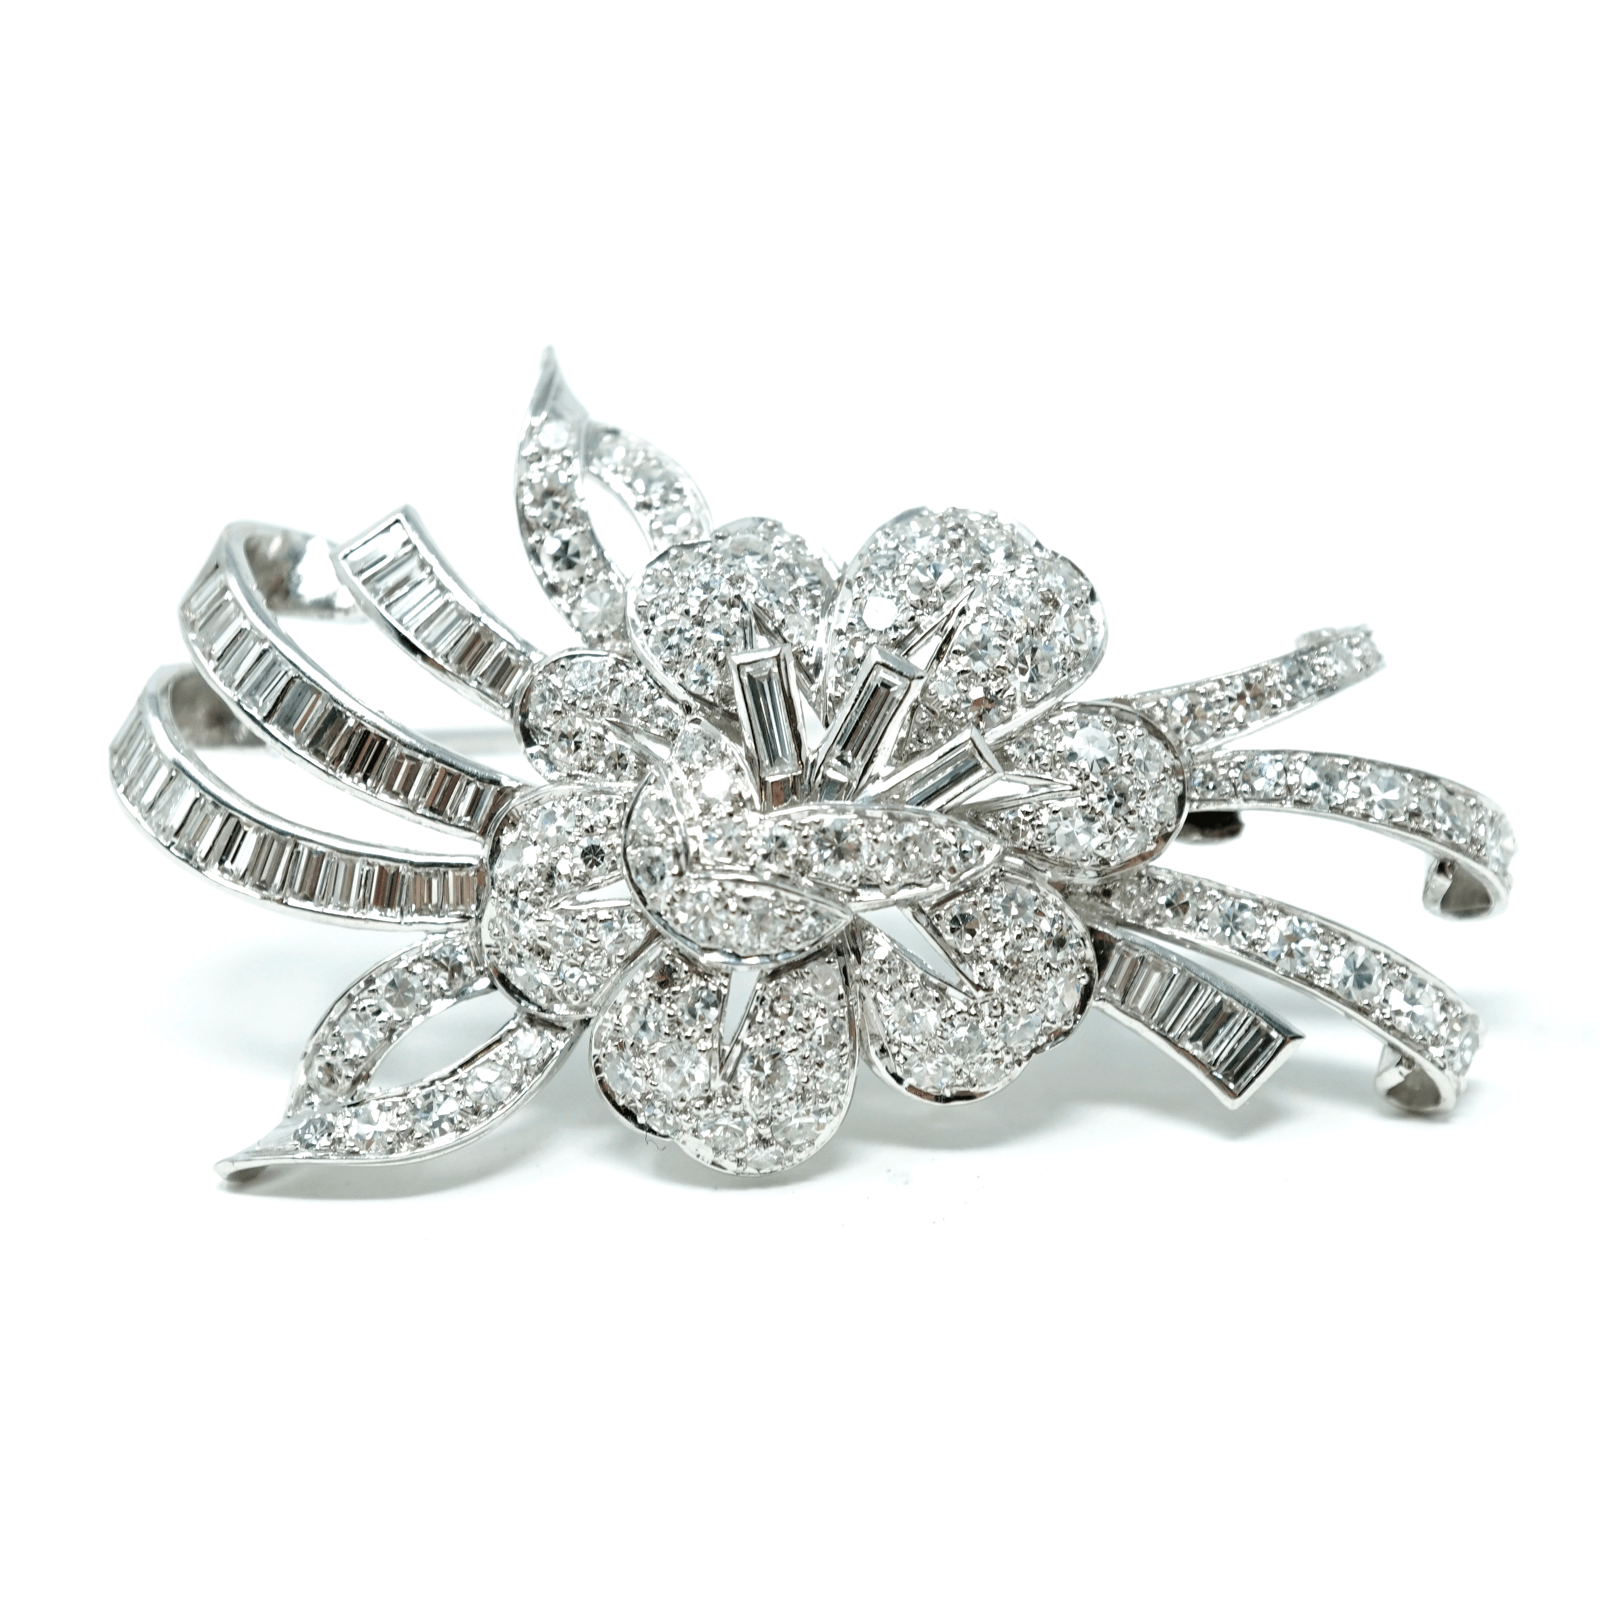 Estate Hand Made Flower Design Platinum & Genuine Diamond Brooch